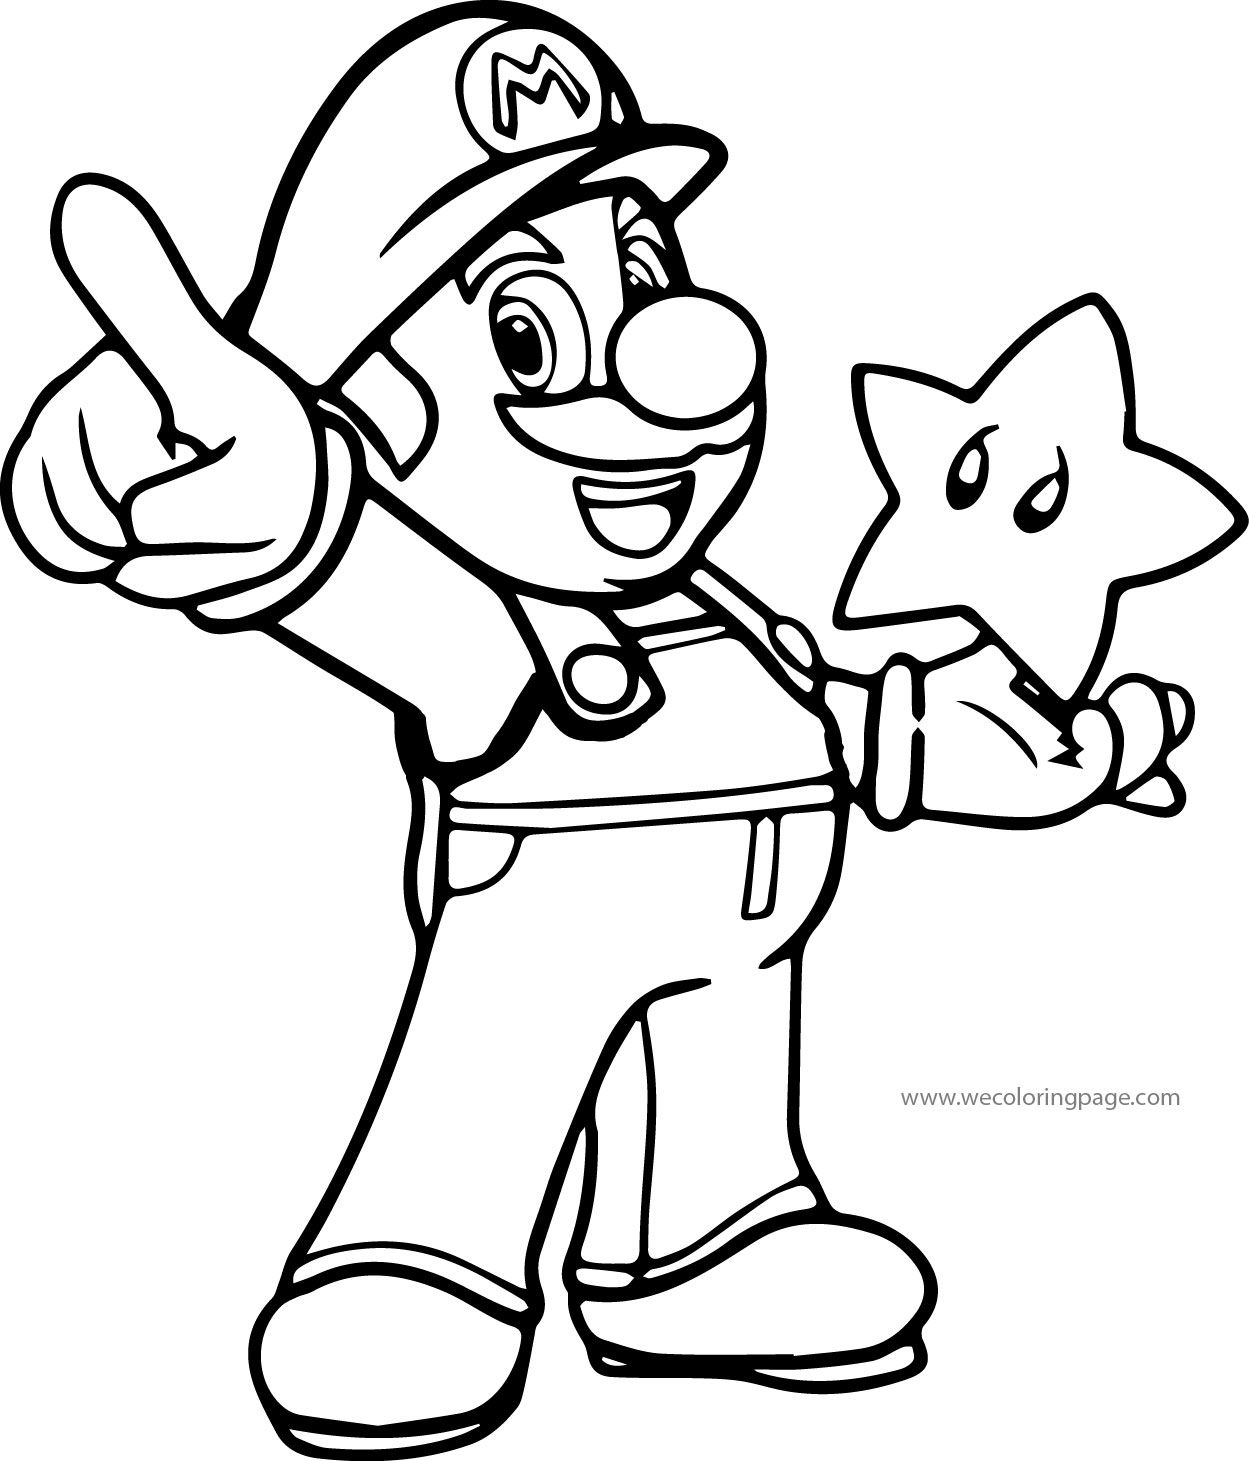 Coloring pages for kids mario bros - Awesome Super Mario Coloring Page